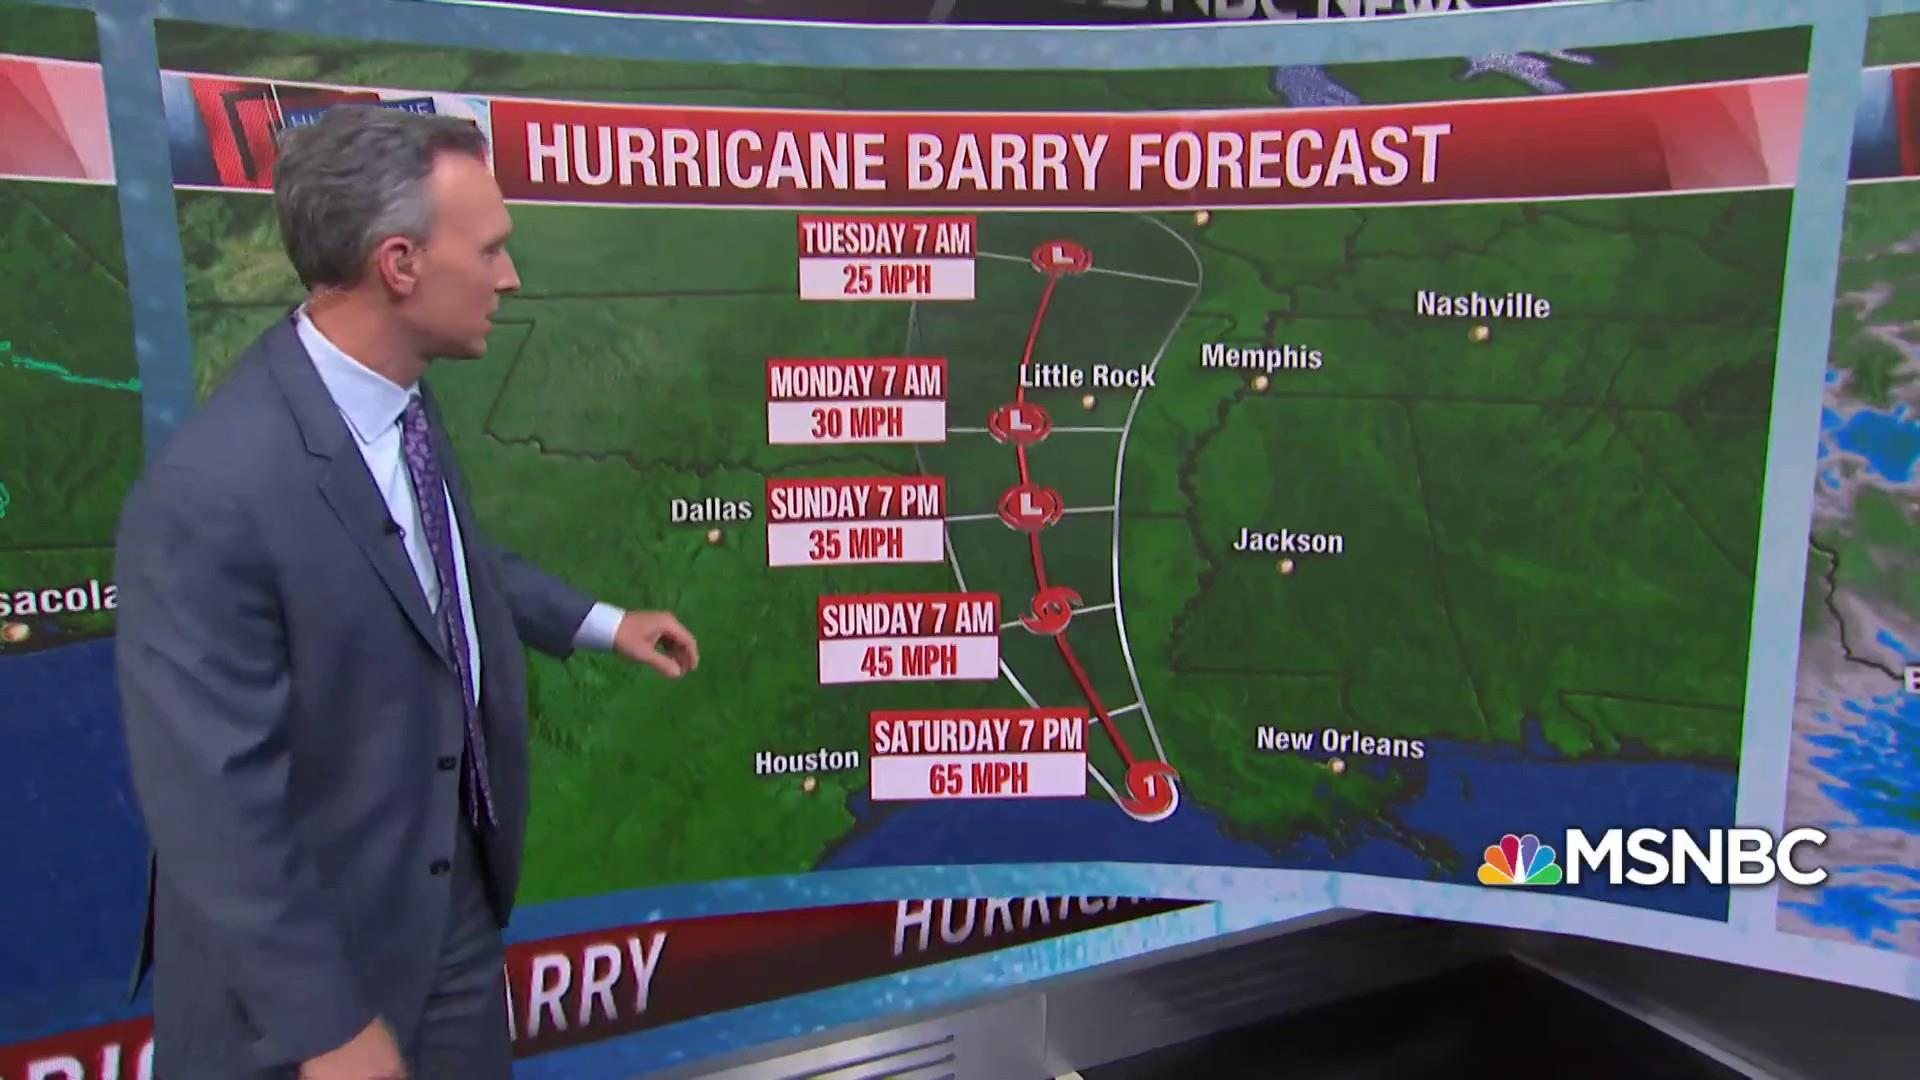 Tropical Storm Barry has now been updated to Hurricane status